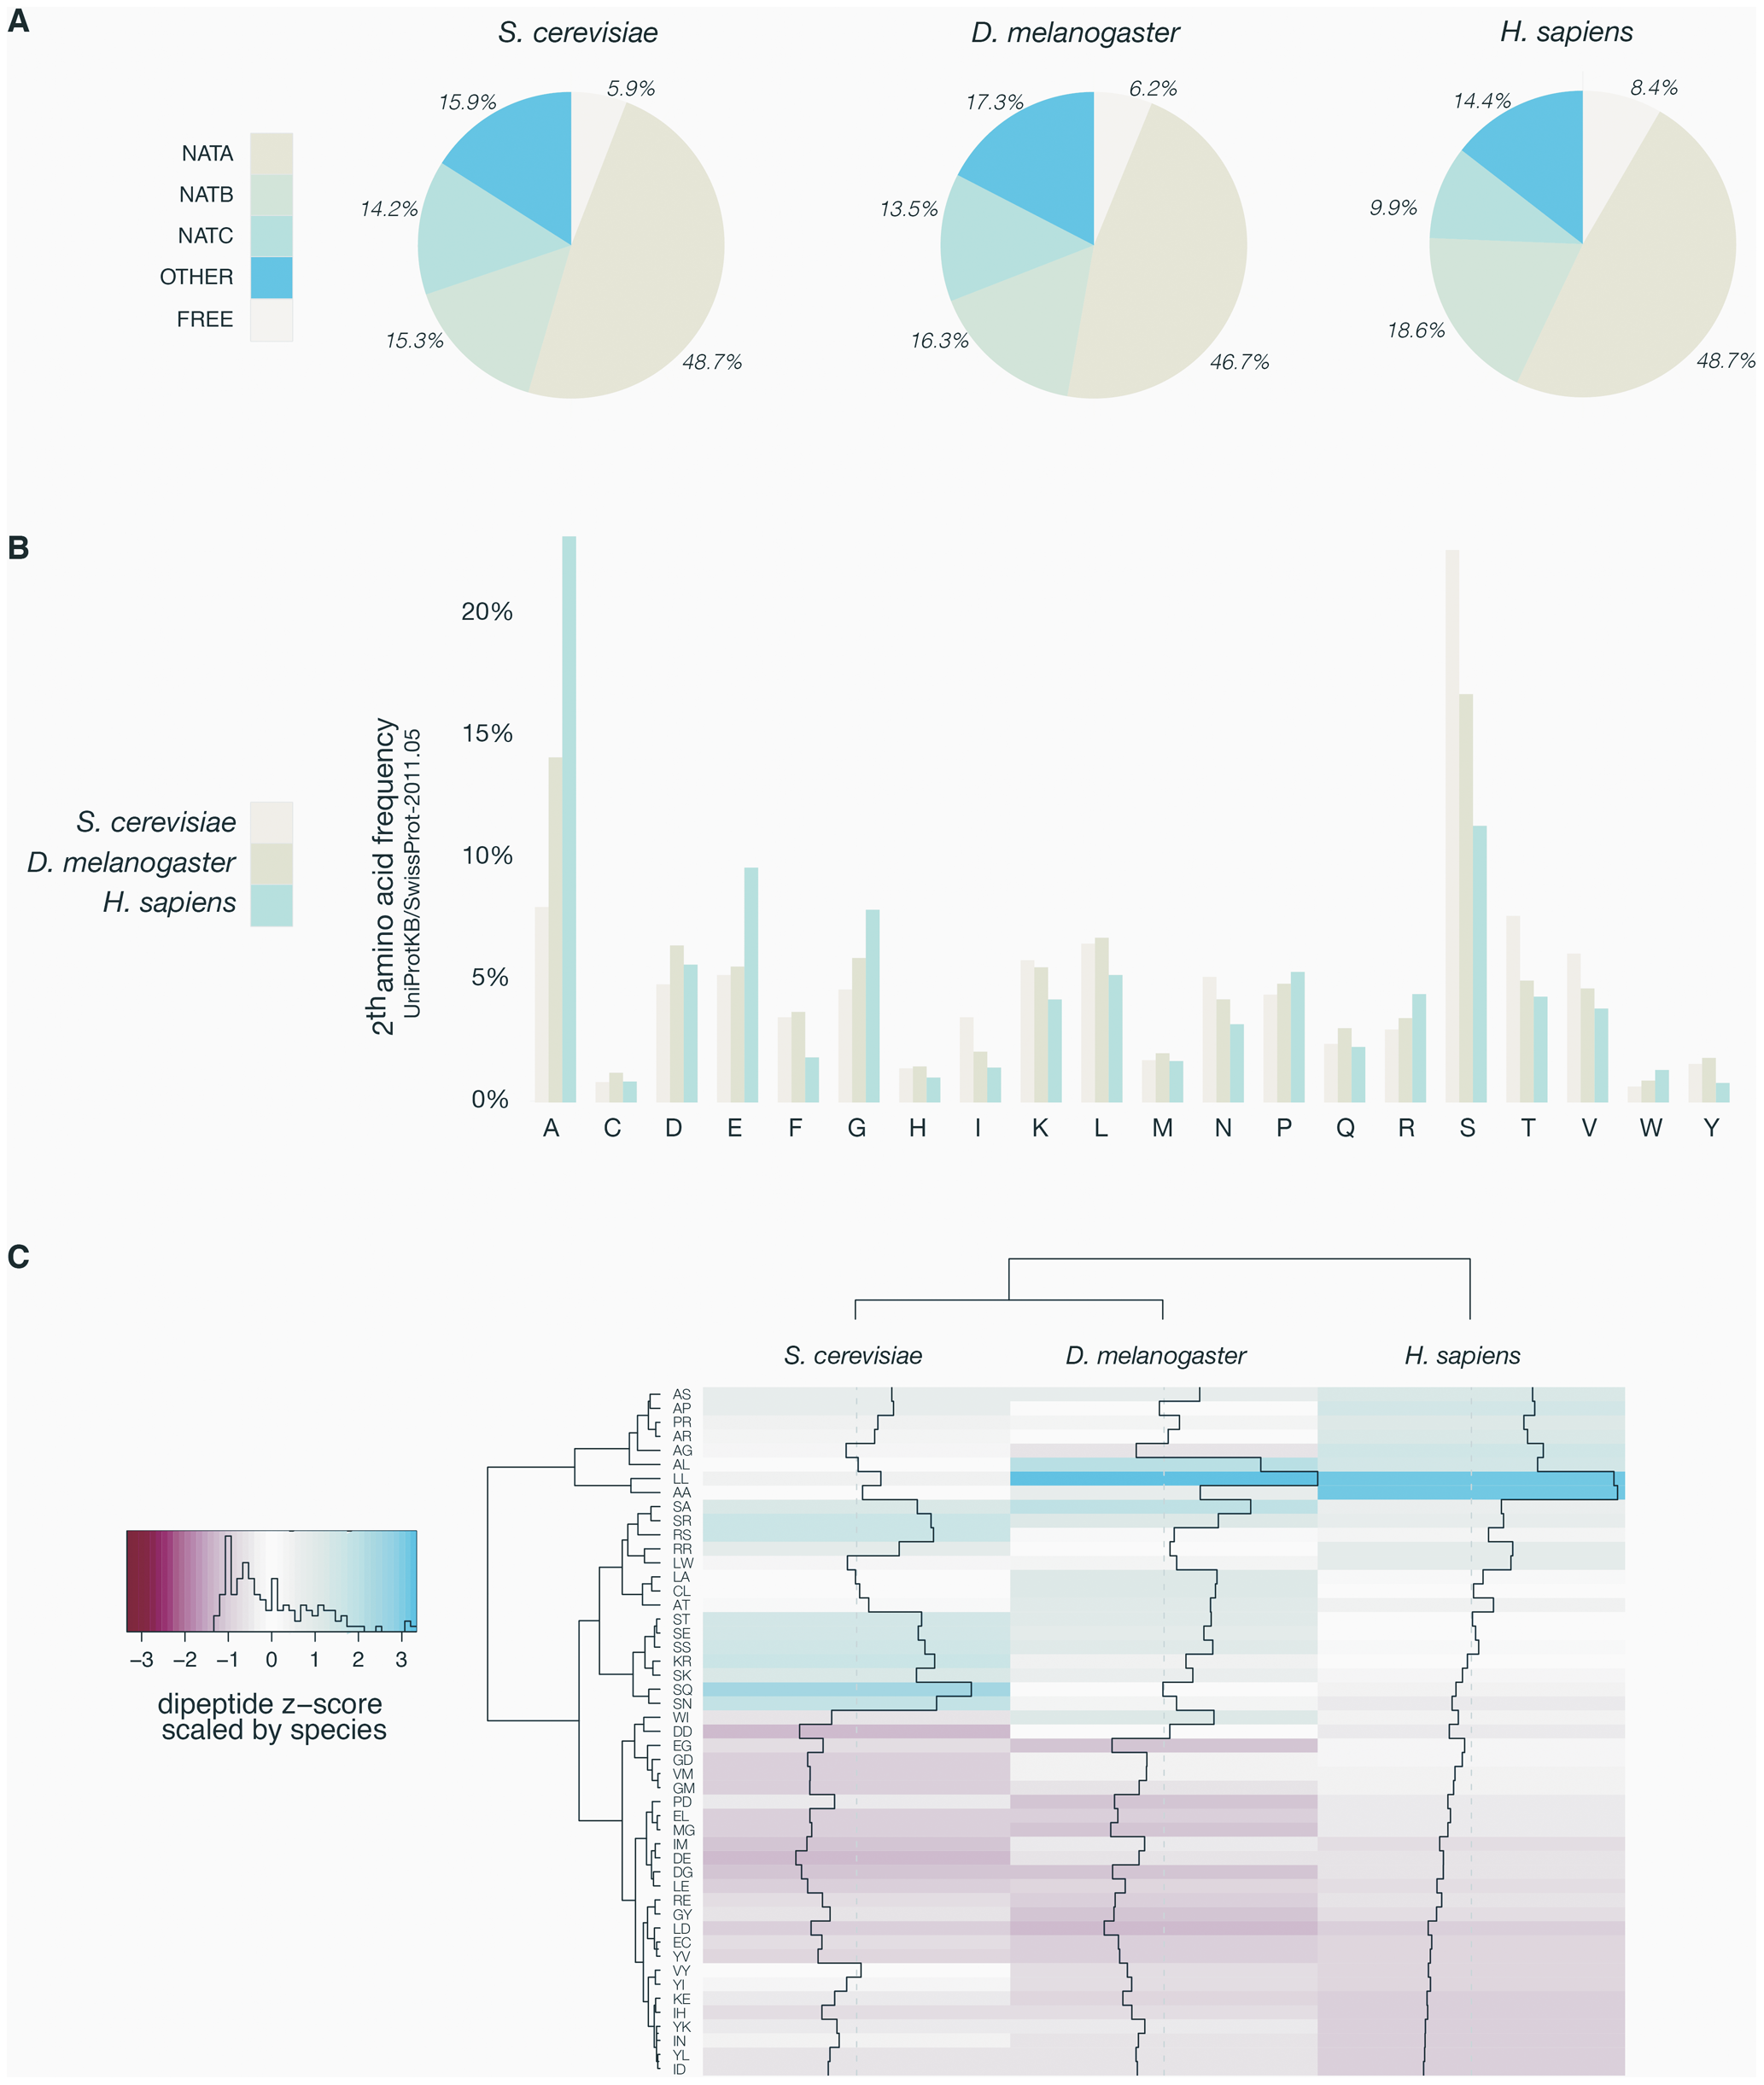 Overview of yeast, fruit fly, and human N-termini in NAT-classes and amino acid prevalence.